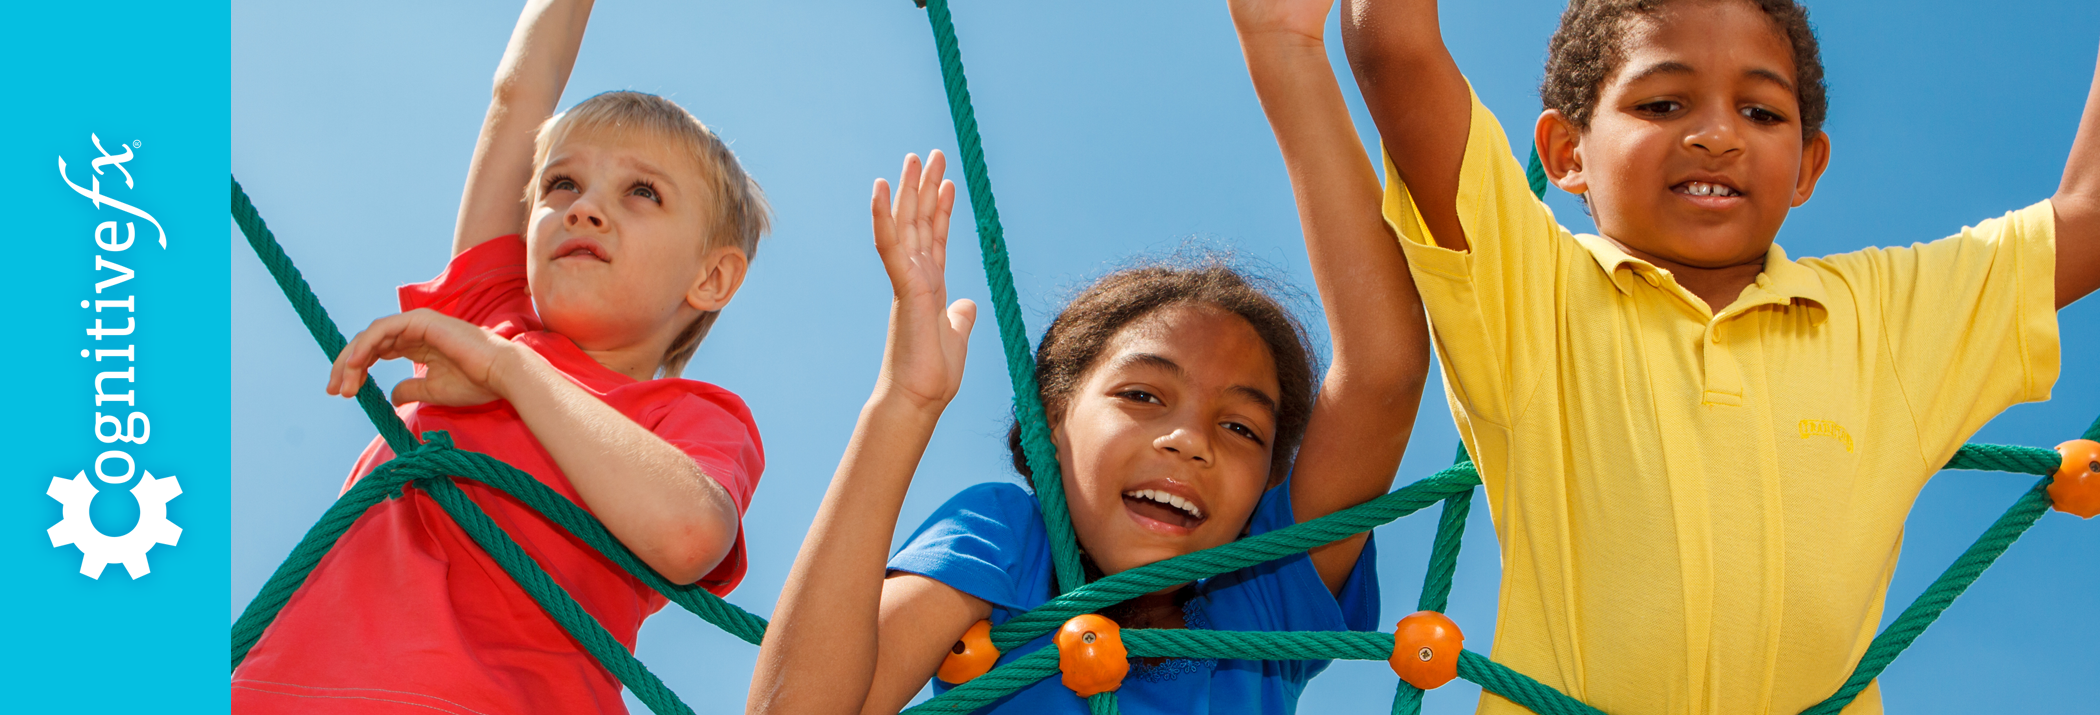 8 Guidelines to Reduce the Risk of a Brain Injury for Children